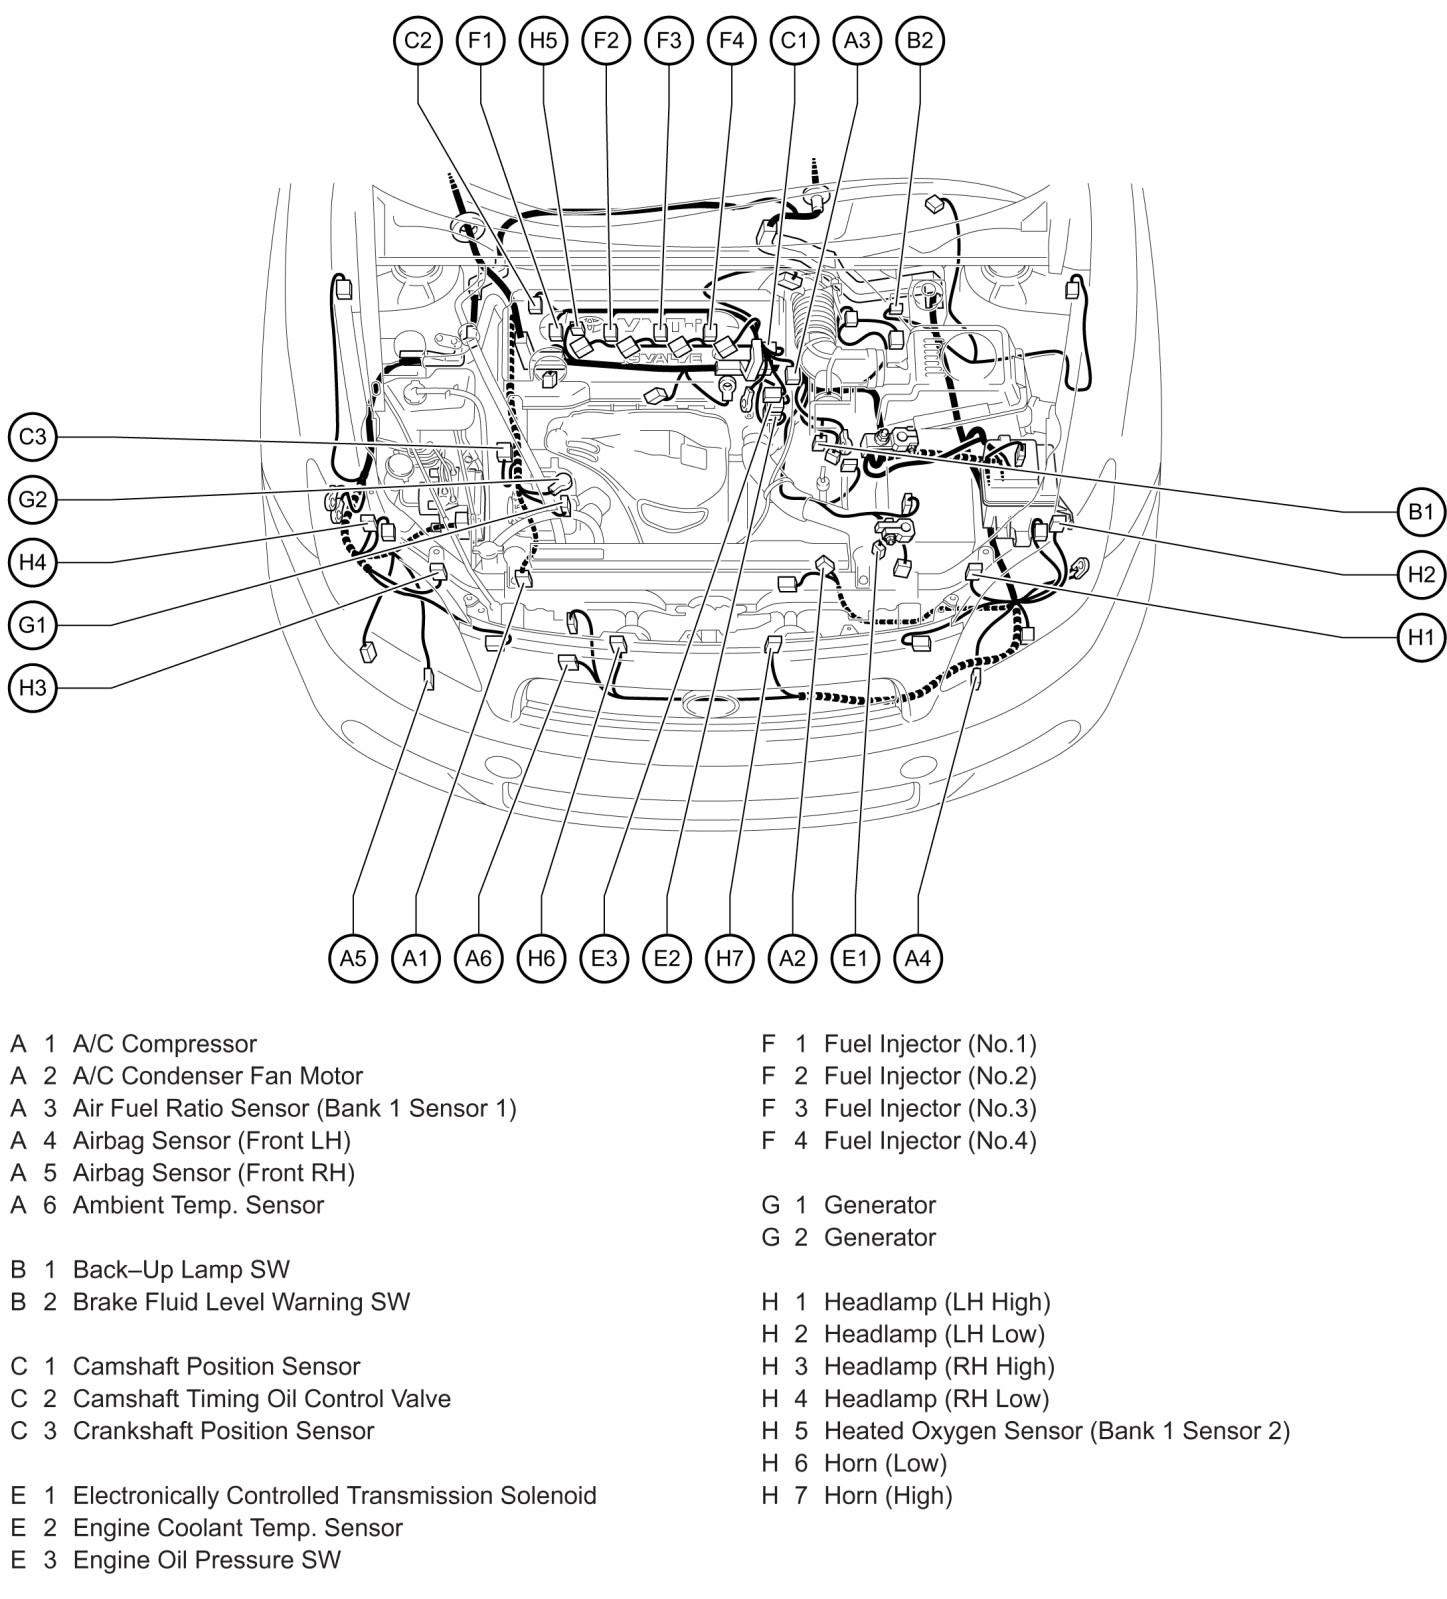 2006 Scion Tc Parts Diagram Scion Tc Parts Diagram Jube 61 Current Gallery I Actually Just Found Of 2006 Scion Tc Parts Diagram